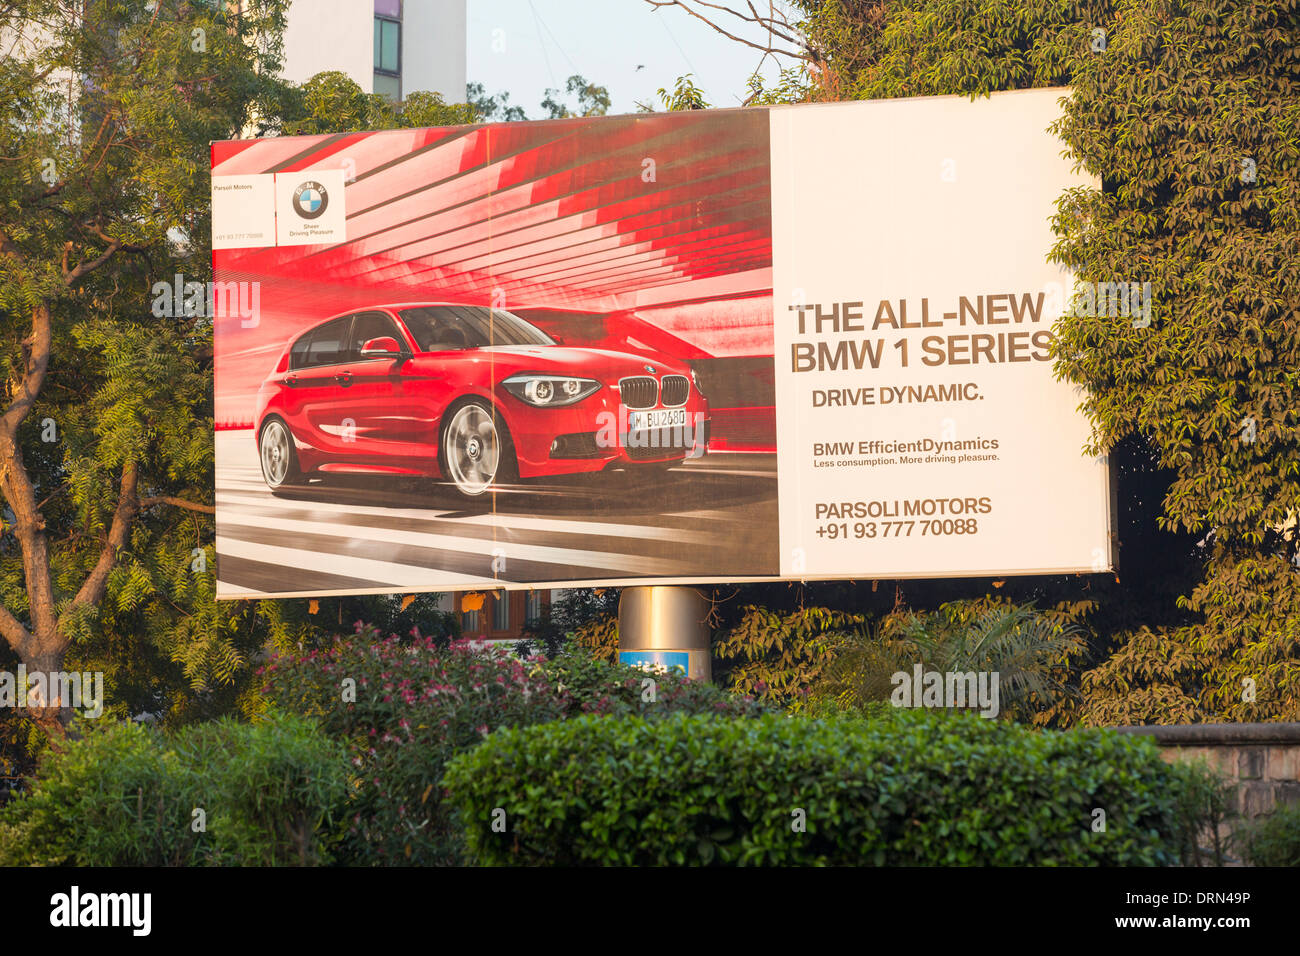 An advert for BMW cars in Ahmedabad; India; - Stock Image